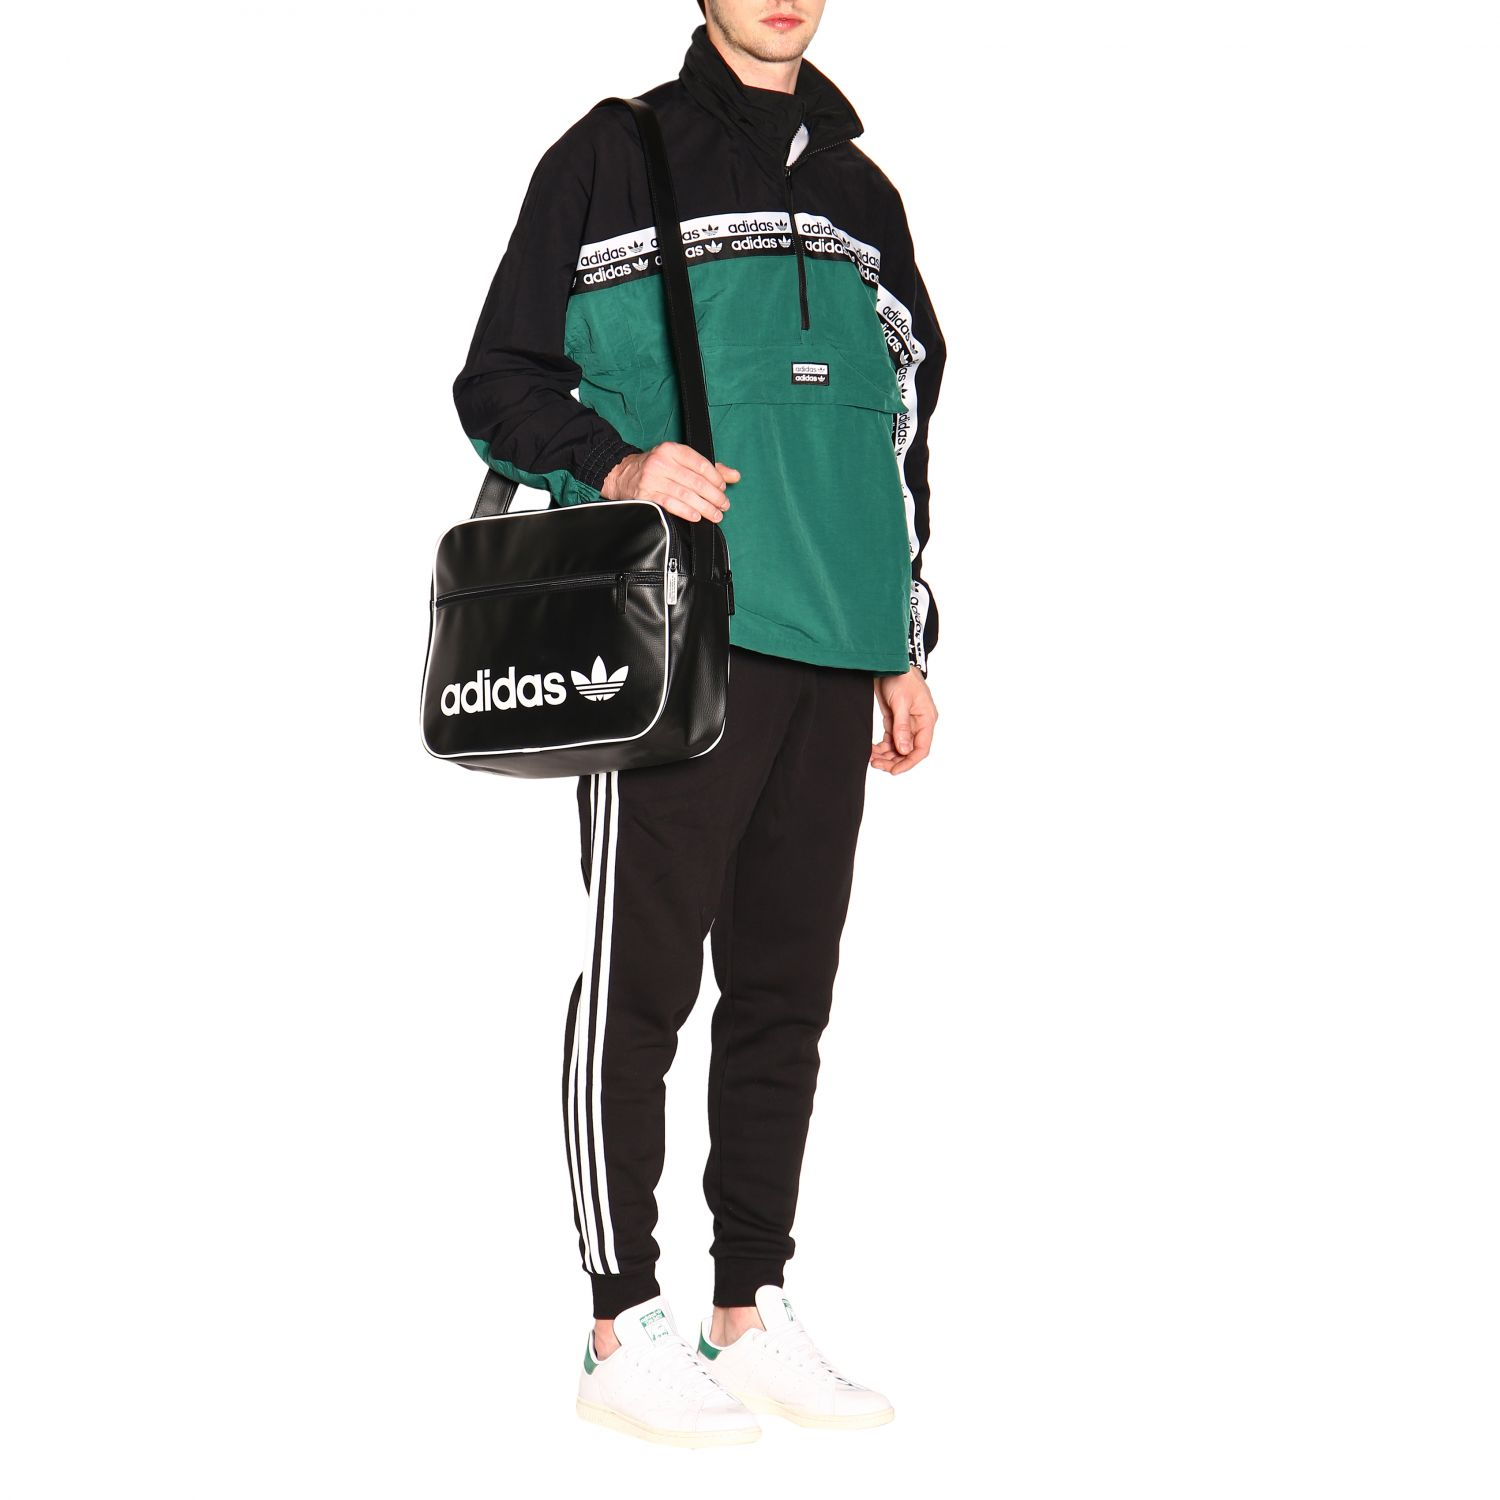 Bag Adidas Originals: Bag kids Adidas Originals black 2